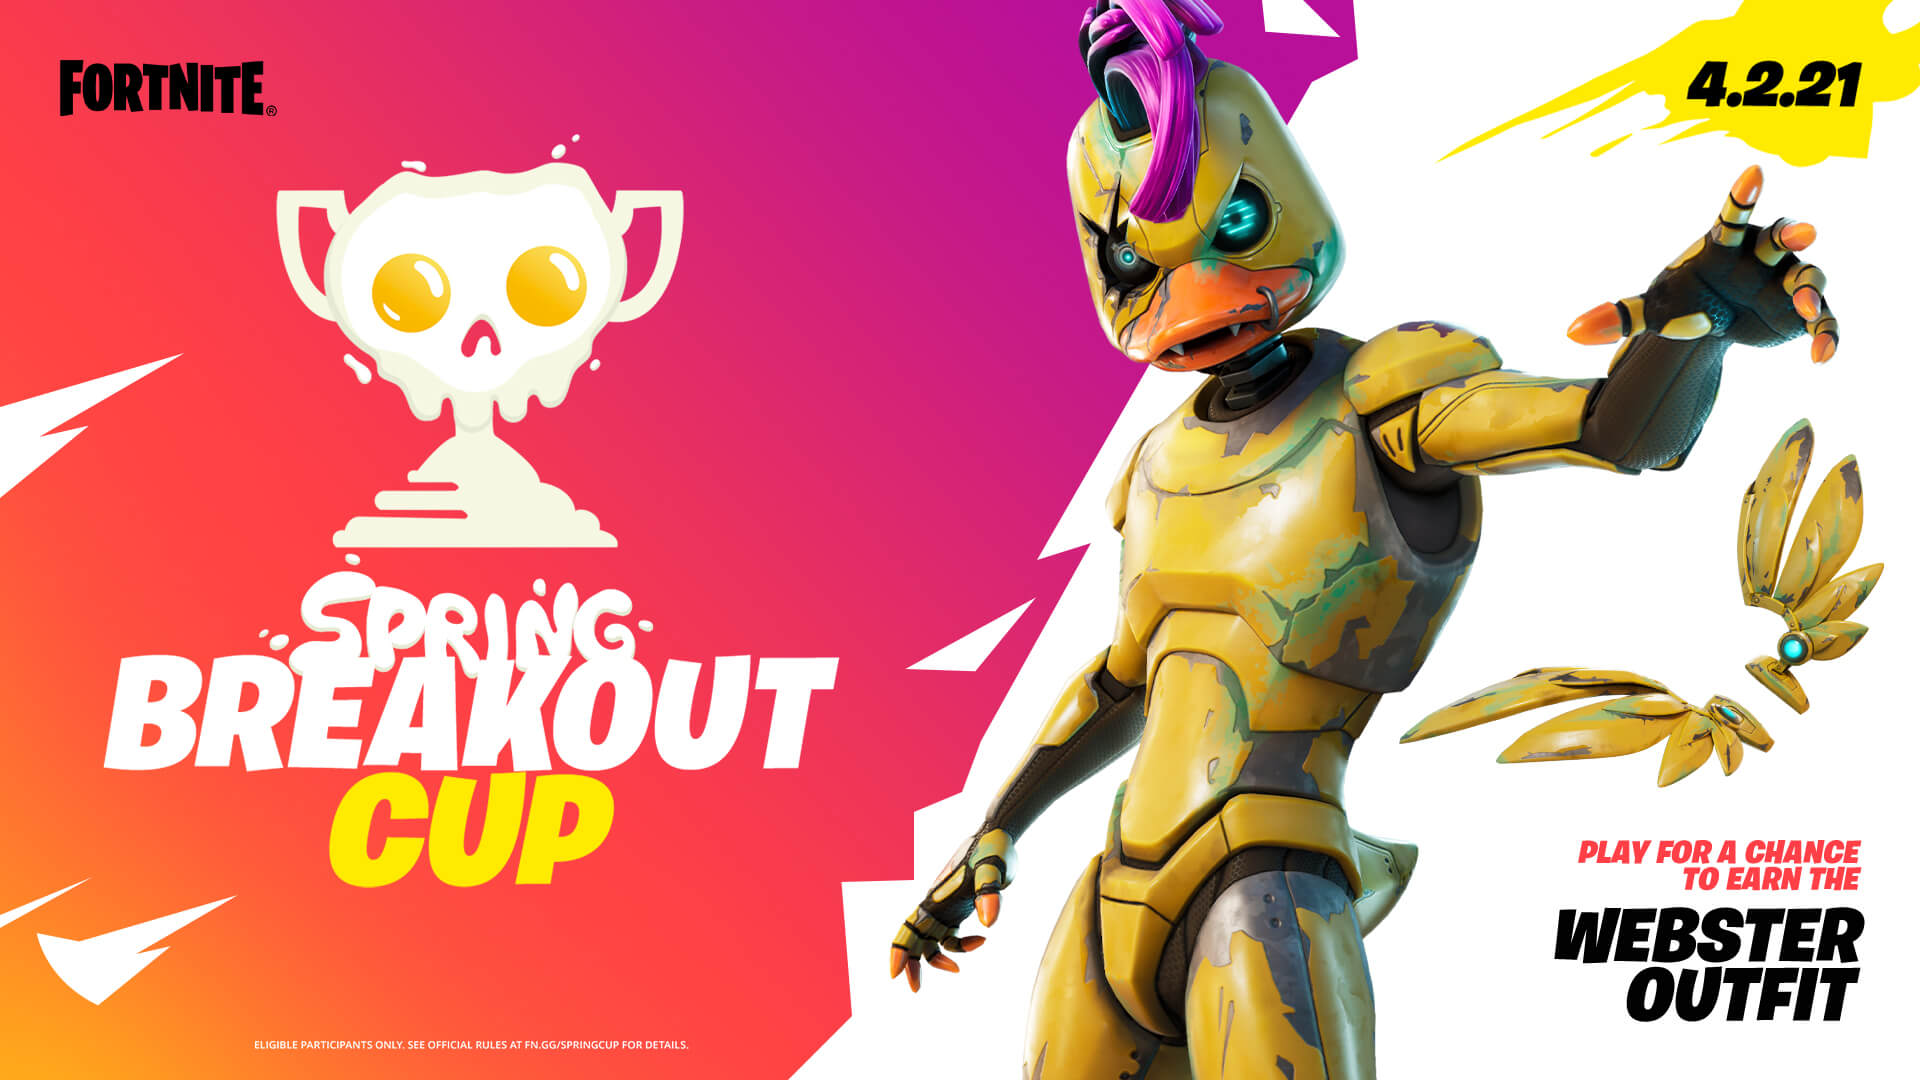 Fortnite Spring Breakout Cup